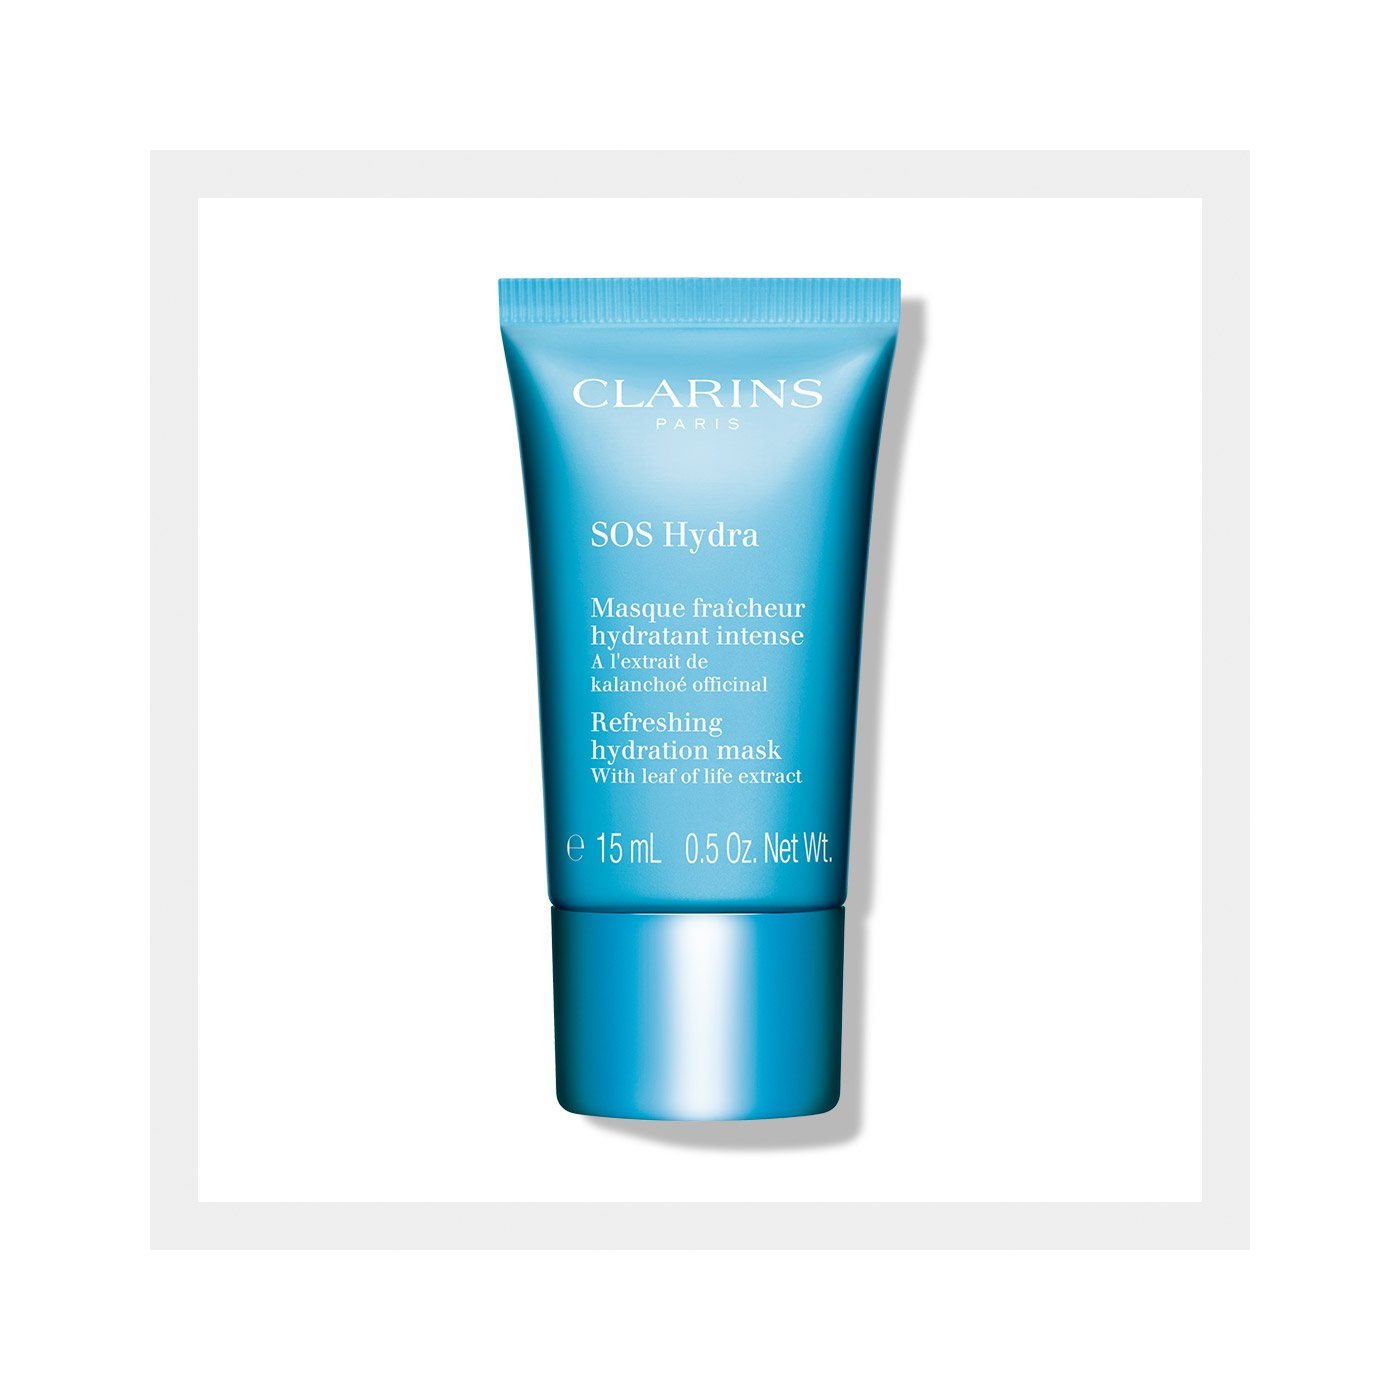 clarins face mask